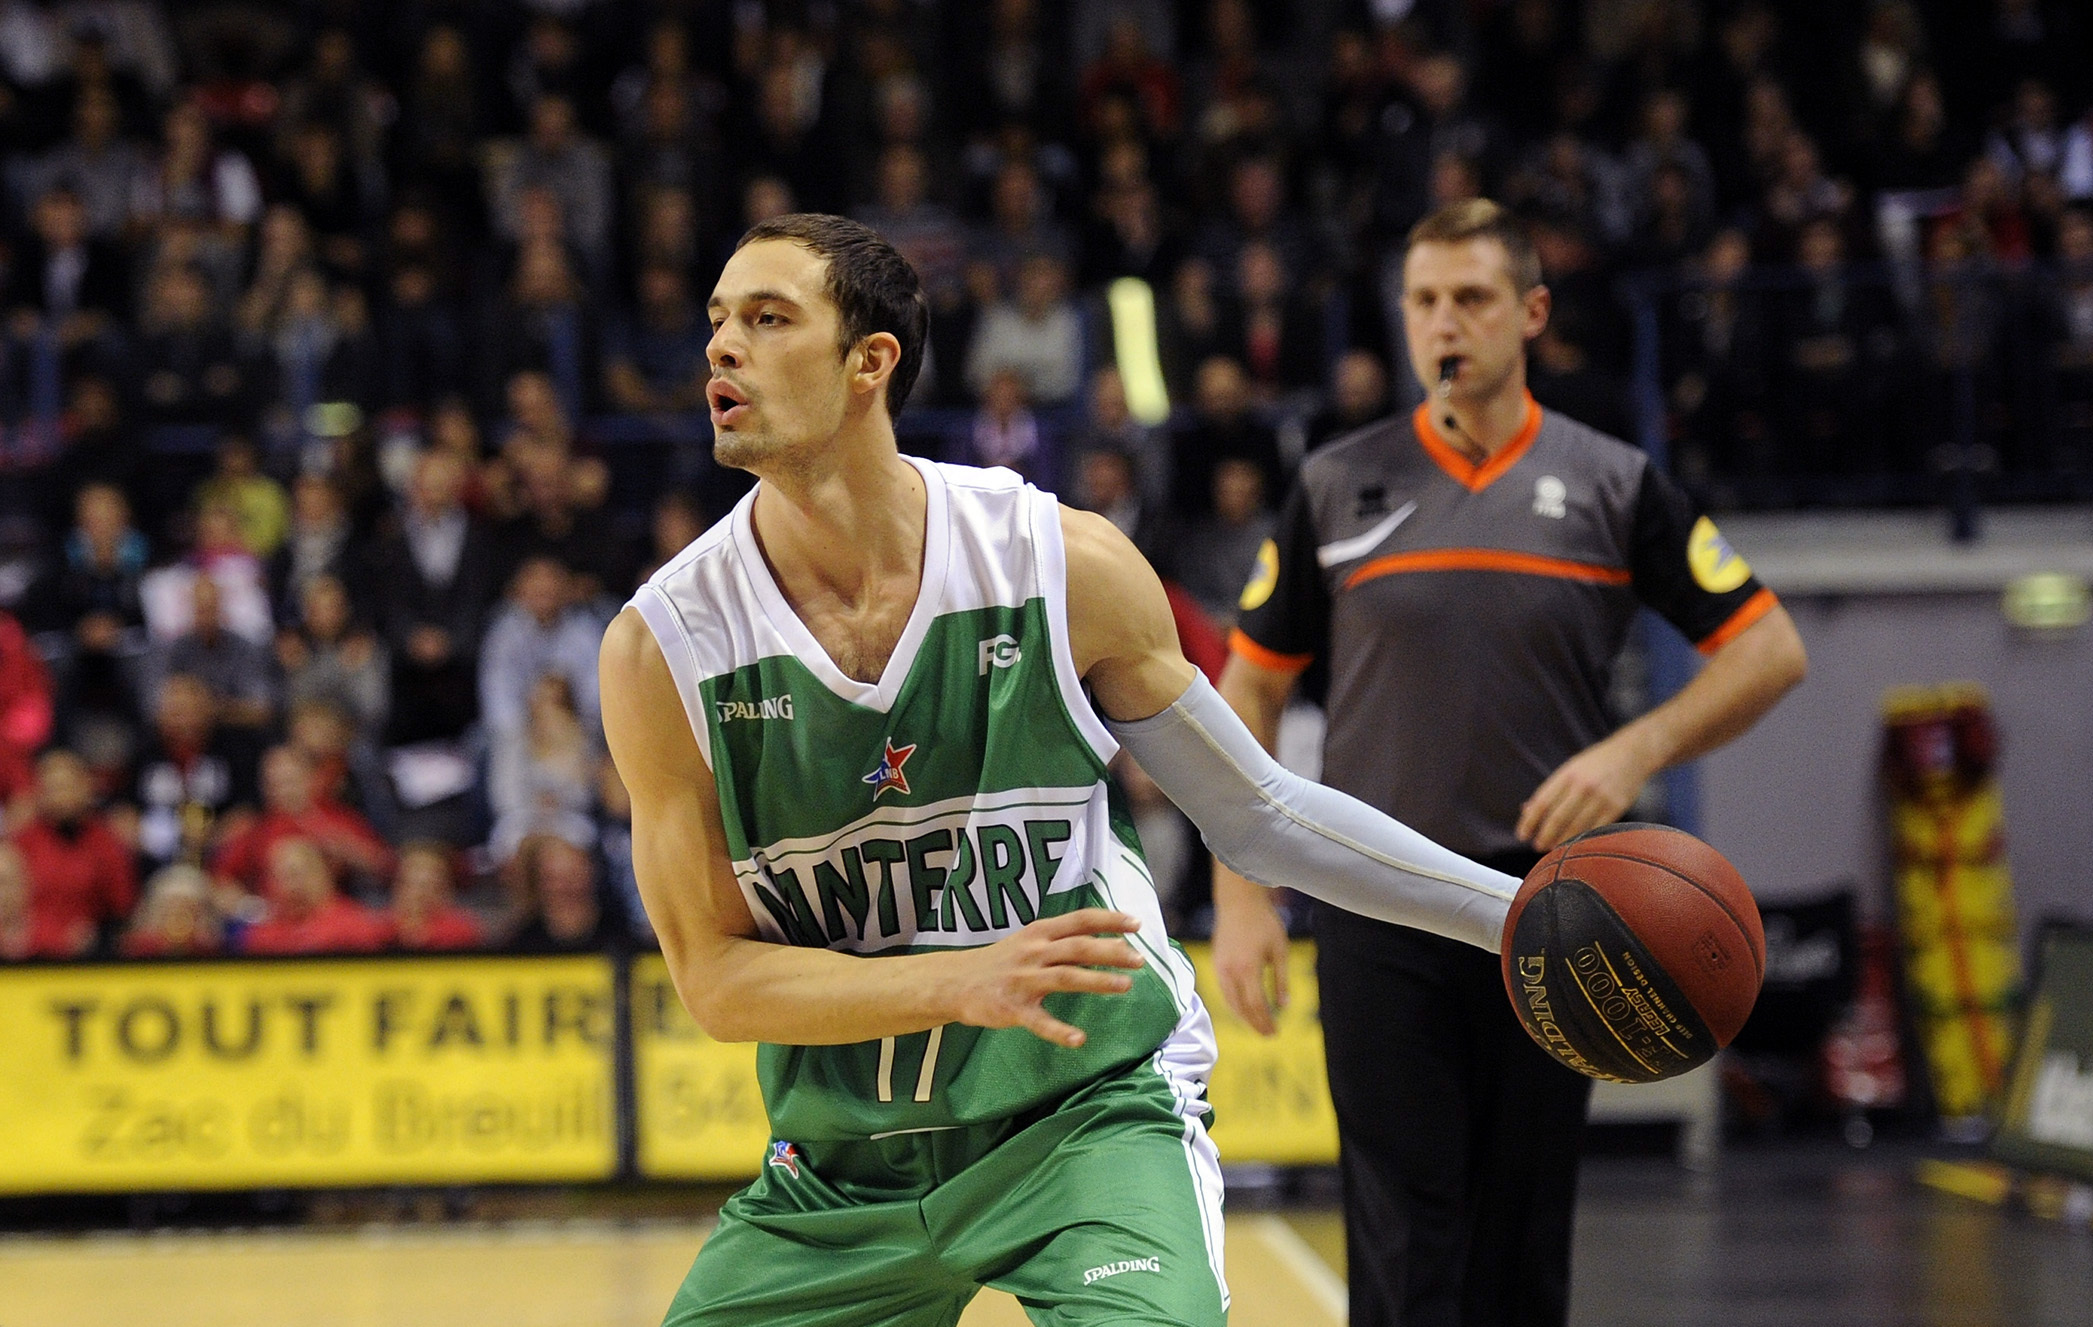 match basket cholet vs jsf nanterre en direct live streaming ibuzz365. Black Bedroom Furniture Sets. Home Design Ideas